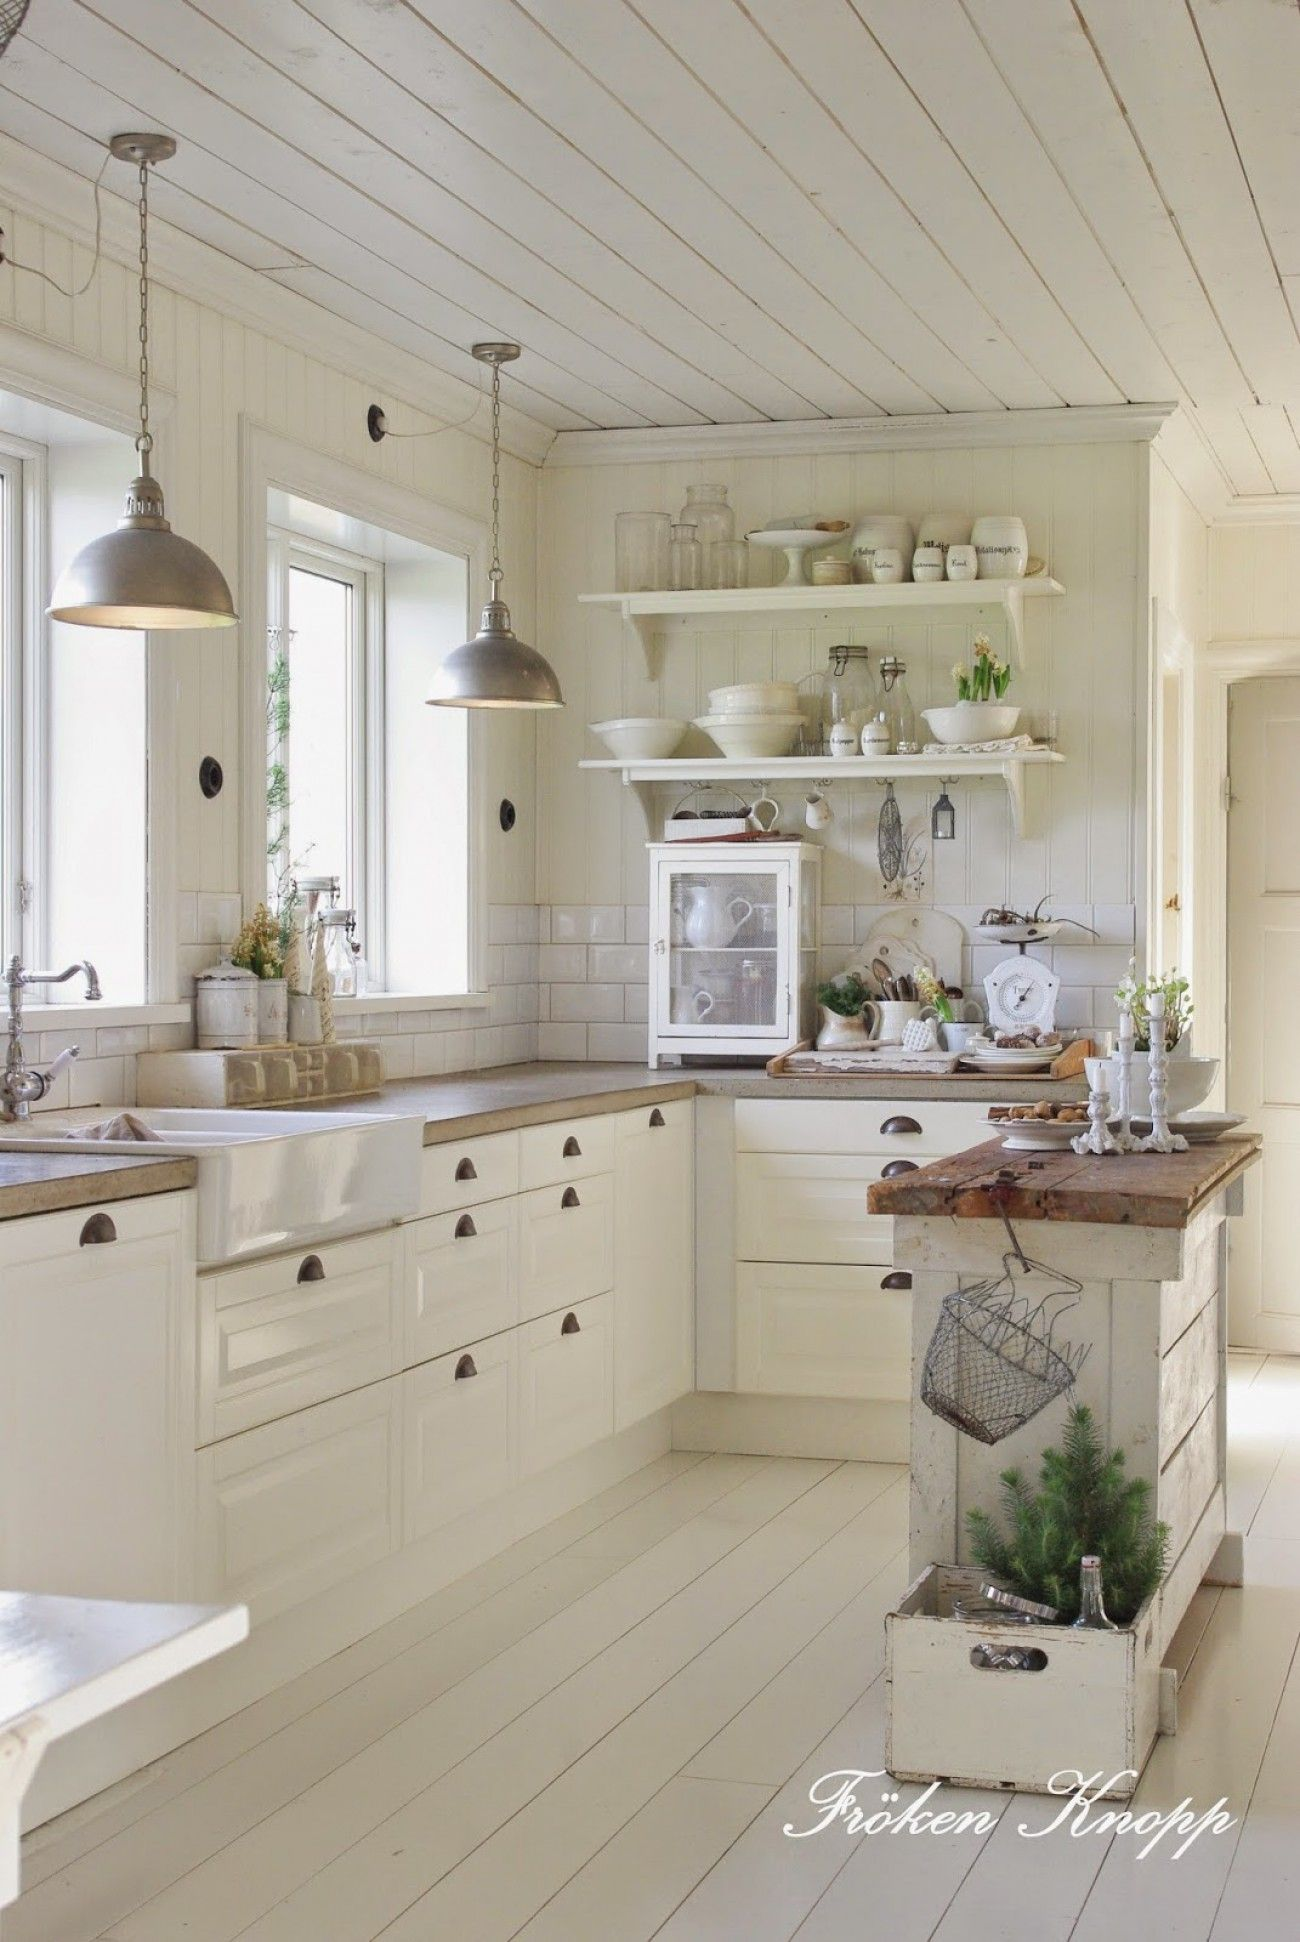 House And Garden Kitchens The Bold Black And White Stripes Is A Classic French Style I